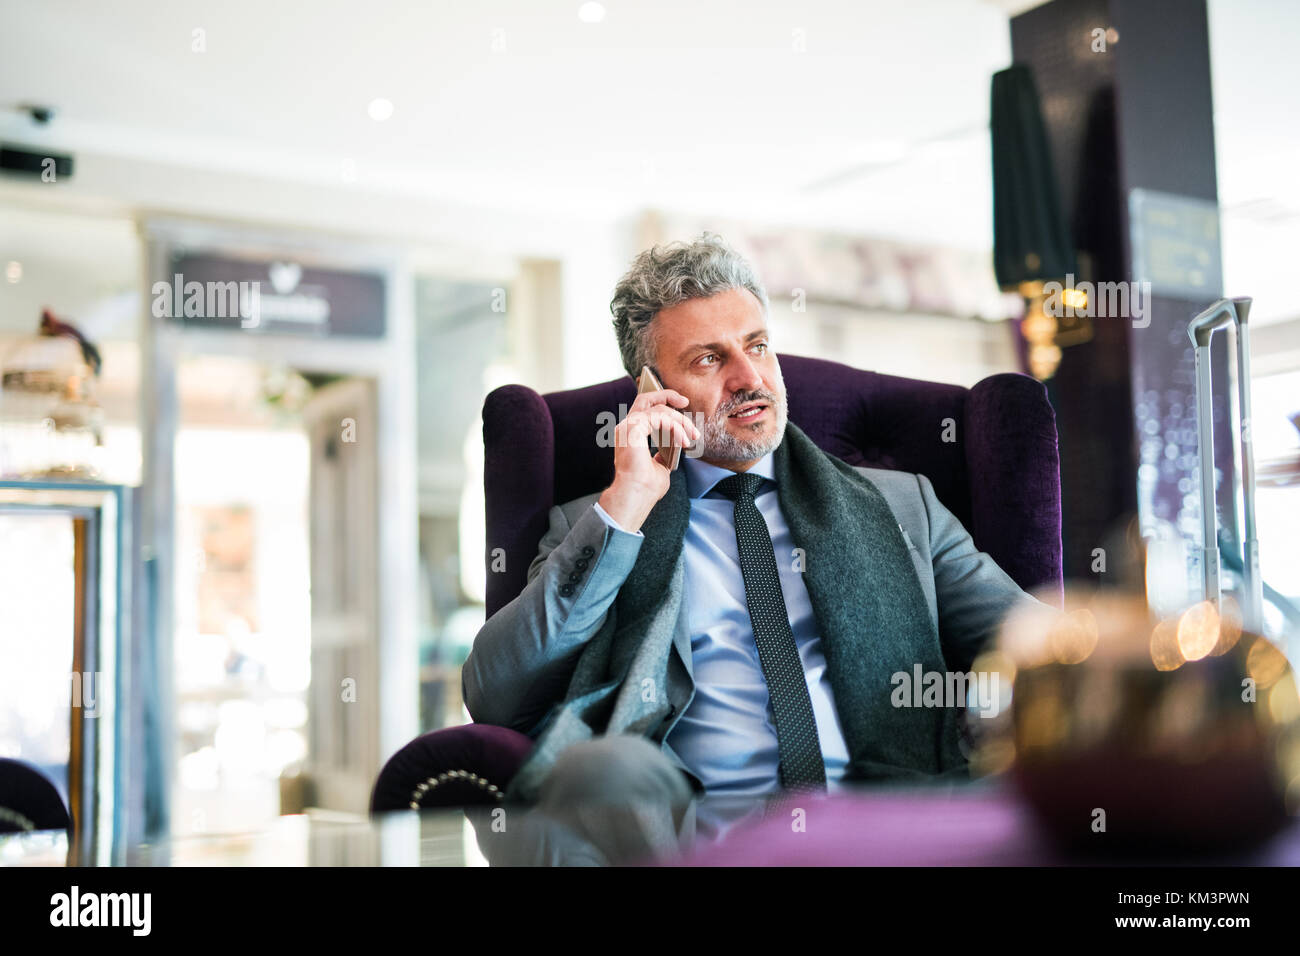 Mature businessman with smartphone in a hotel lounge. - Stock Image